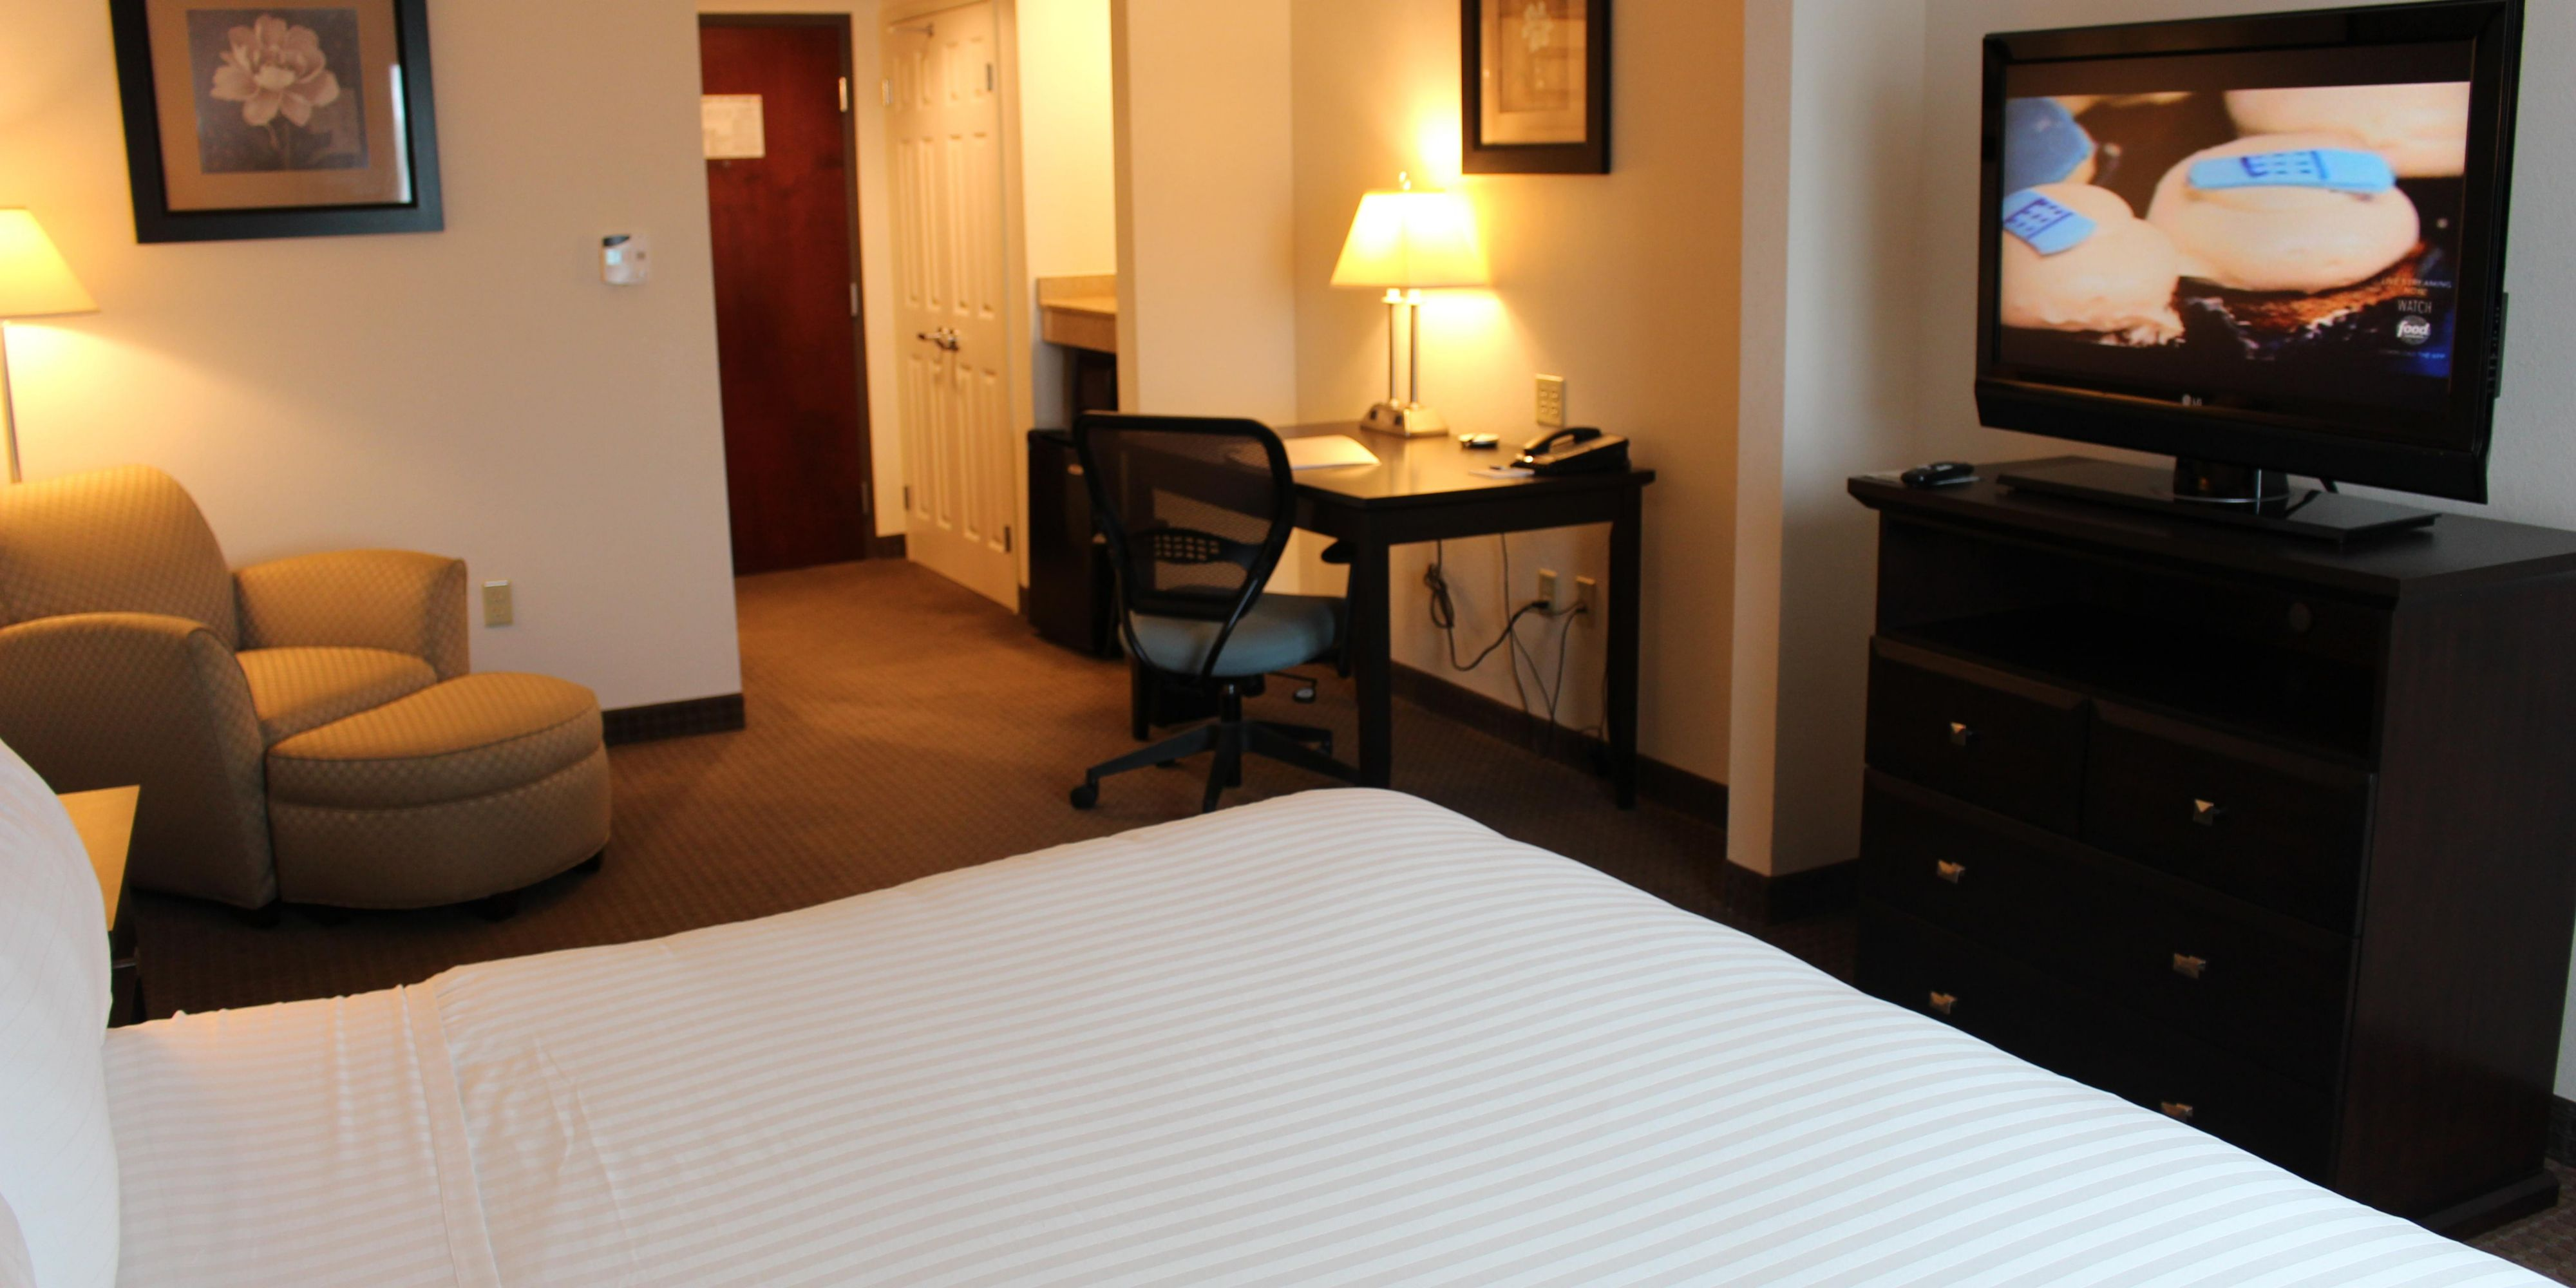 Holiday Inn Express & Suites Mobile West - I-10 Hotel by IHG